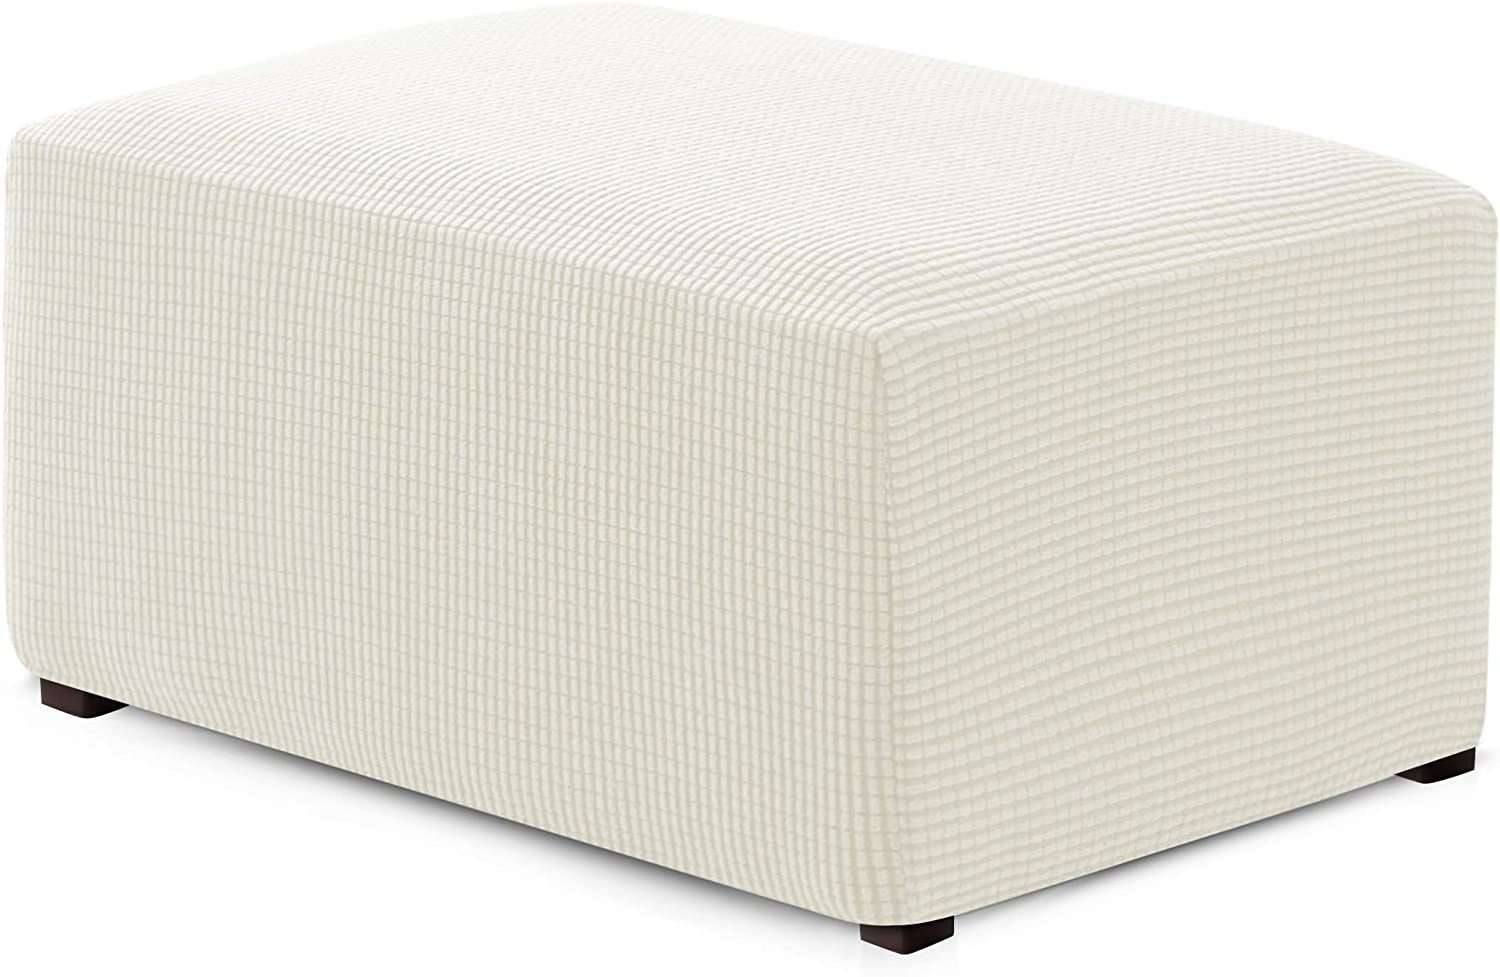 Hokway Ottoman Slipcovers Stretchable Foot Rest Sofa Slipcovers Footstool Covers Storage Ottoman Covers(Off-White, Oversize)